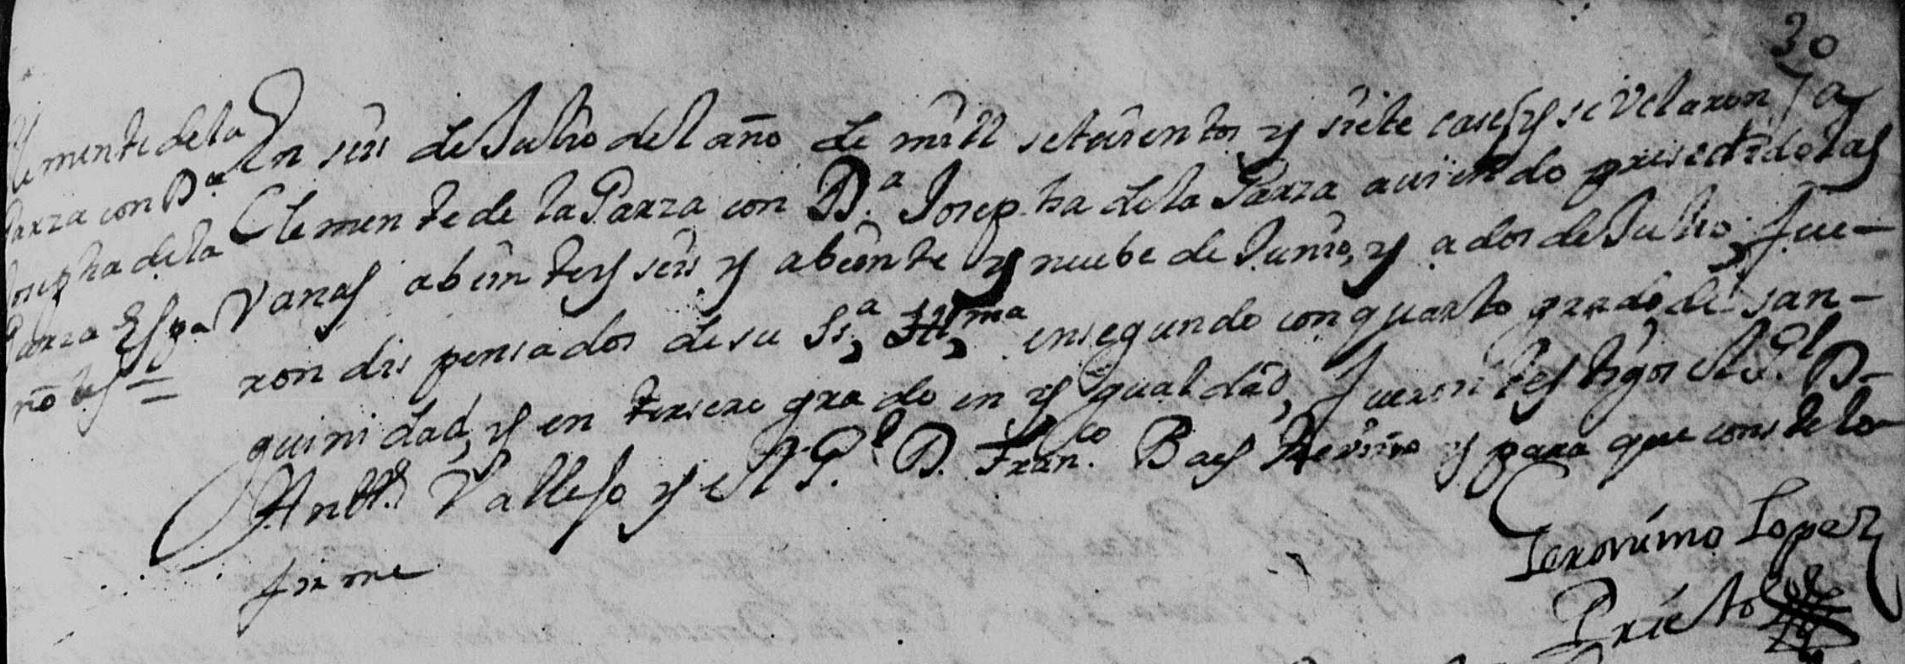 Clemente de la Garza and Josefa Catalina Garza FamilySearch Marriage Monterrey 1706 Pg. 78